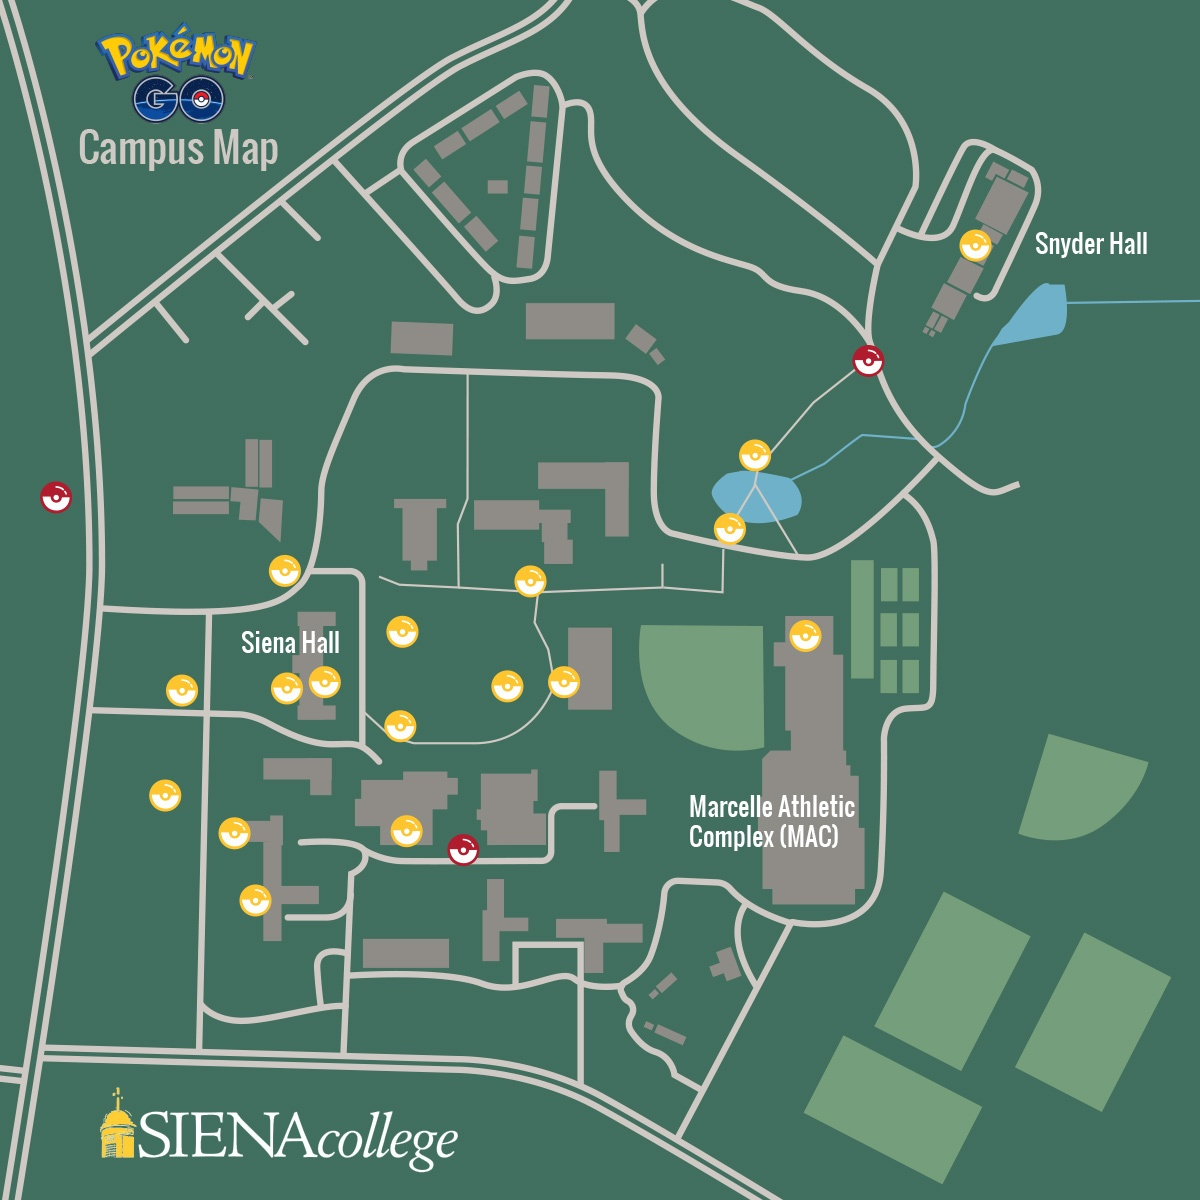 siena college campus map The Official Siena College Pokemon Go Map Siena College siena college campus map